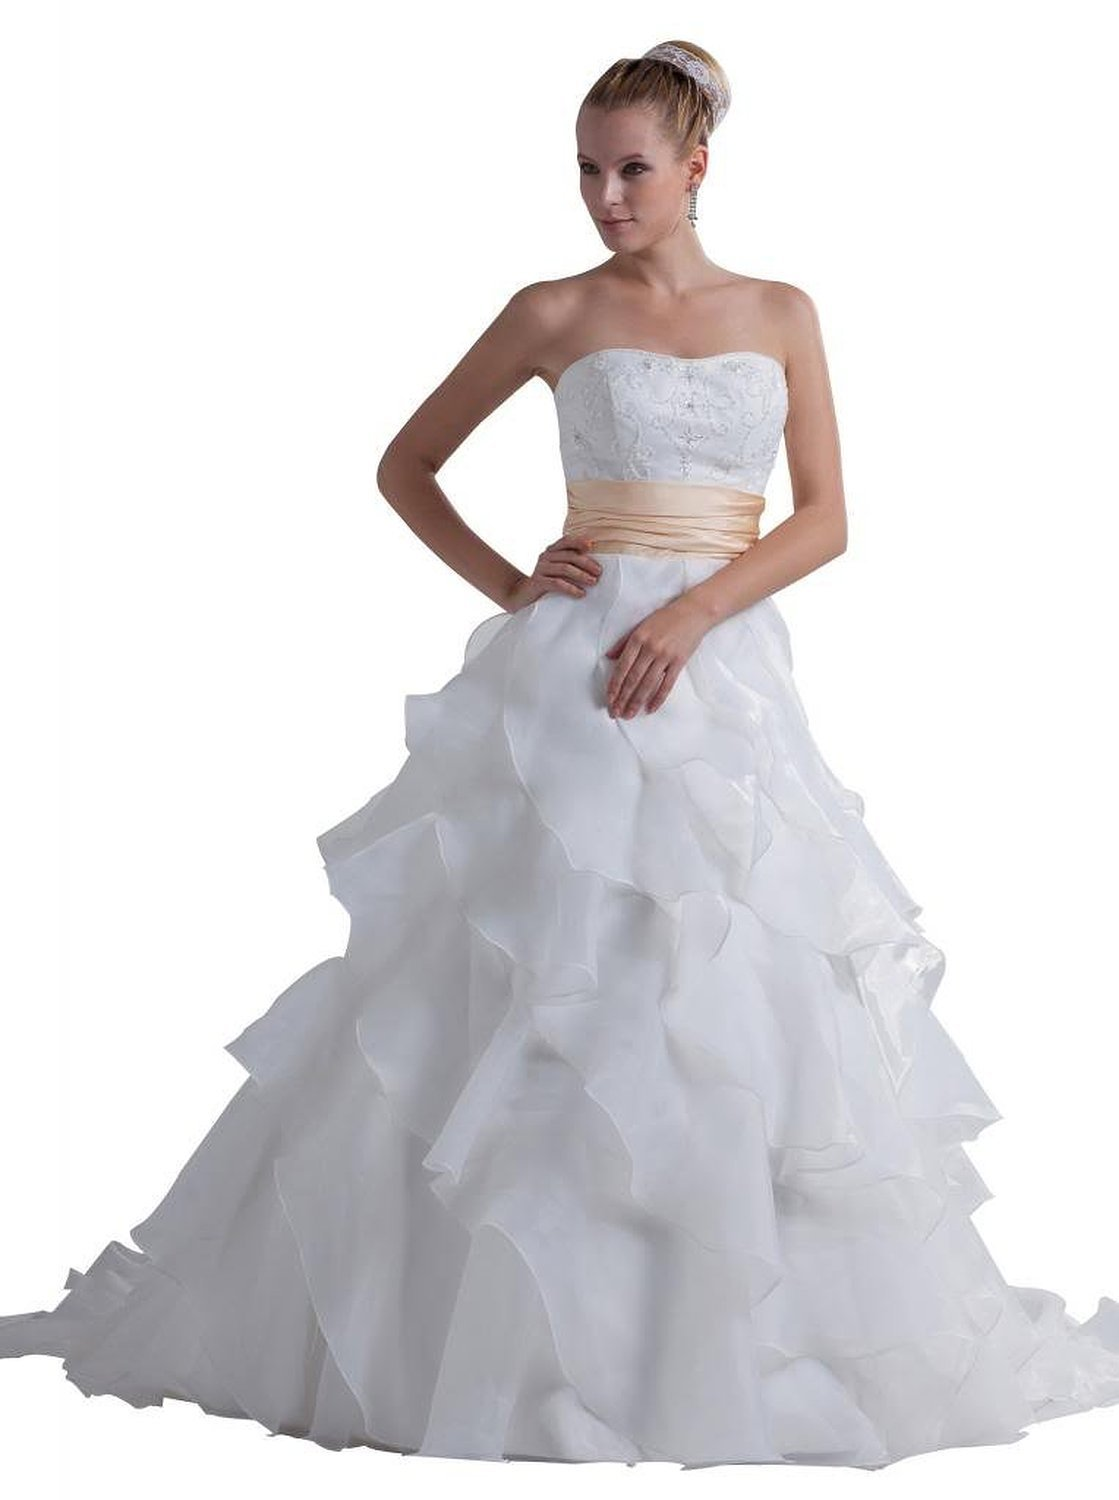 Albizia Charming Strapless Princess Wedding Gown With